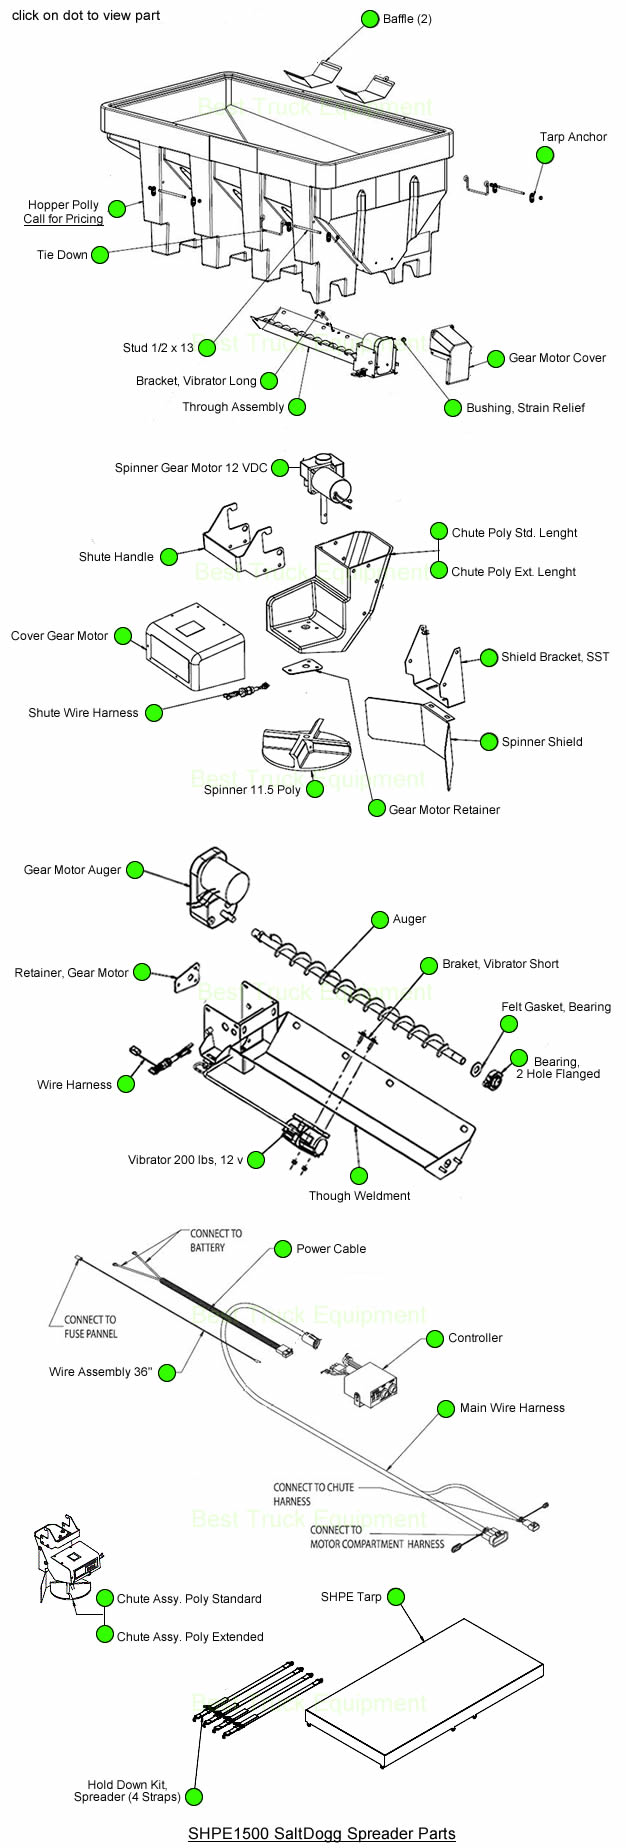 shpe2000 saltdogg shpe2000 buyers salt spreader parts by part look up diagram salt dogg wiring harness at edmiracle.co